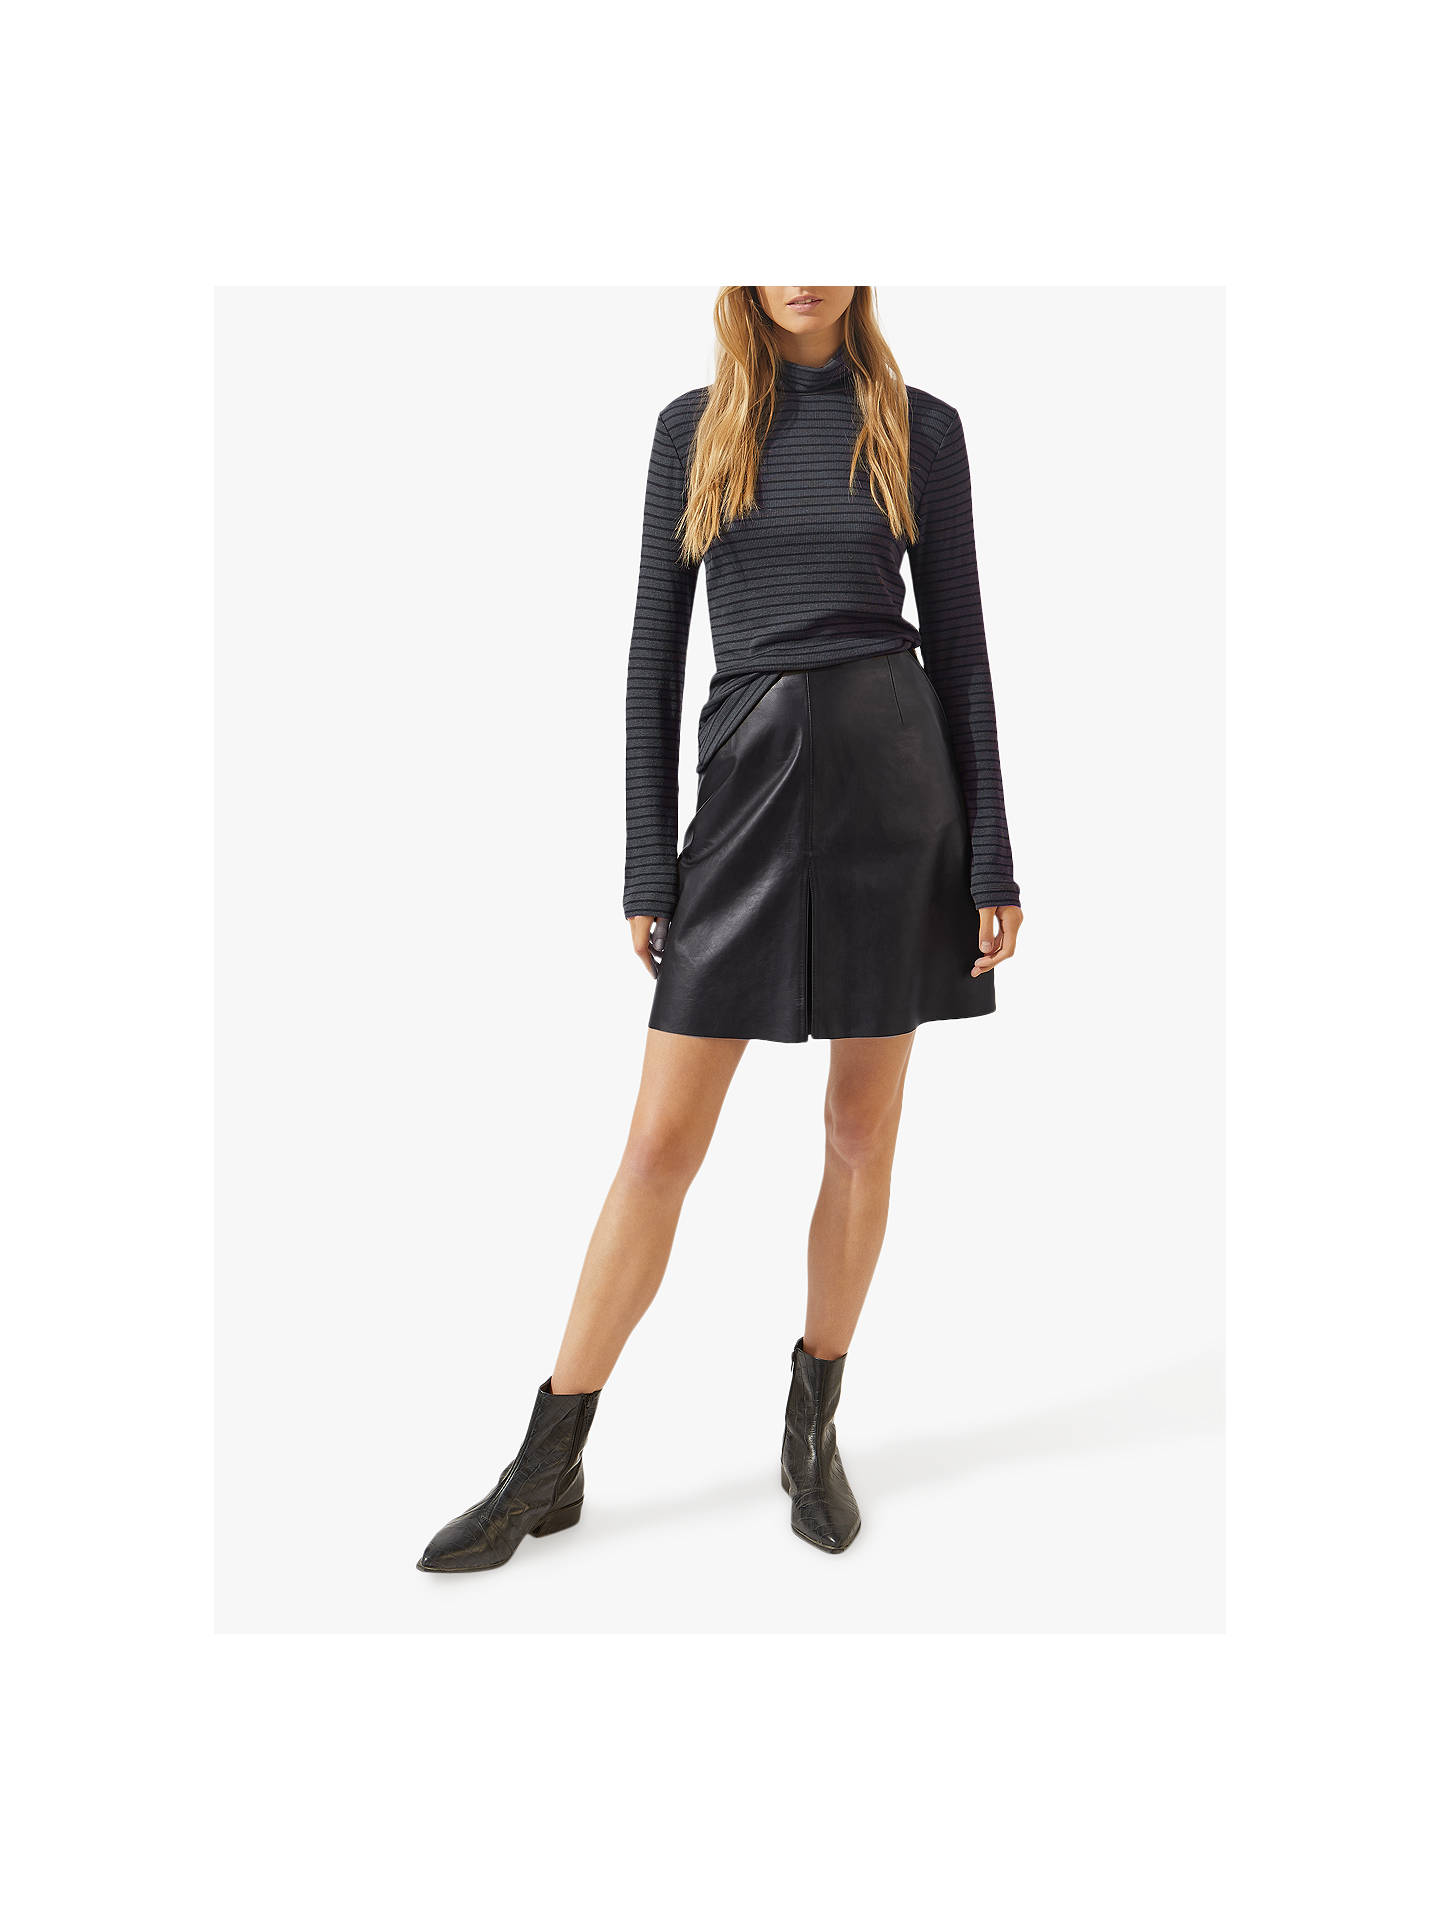 22f2c3aaff54 Buy Jigsaw Mini Pleated Front Leather Skirt, Black, 6 Online at  johnlewis.com ...